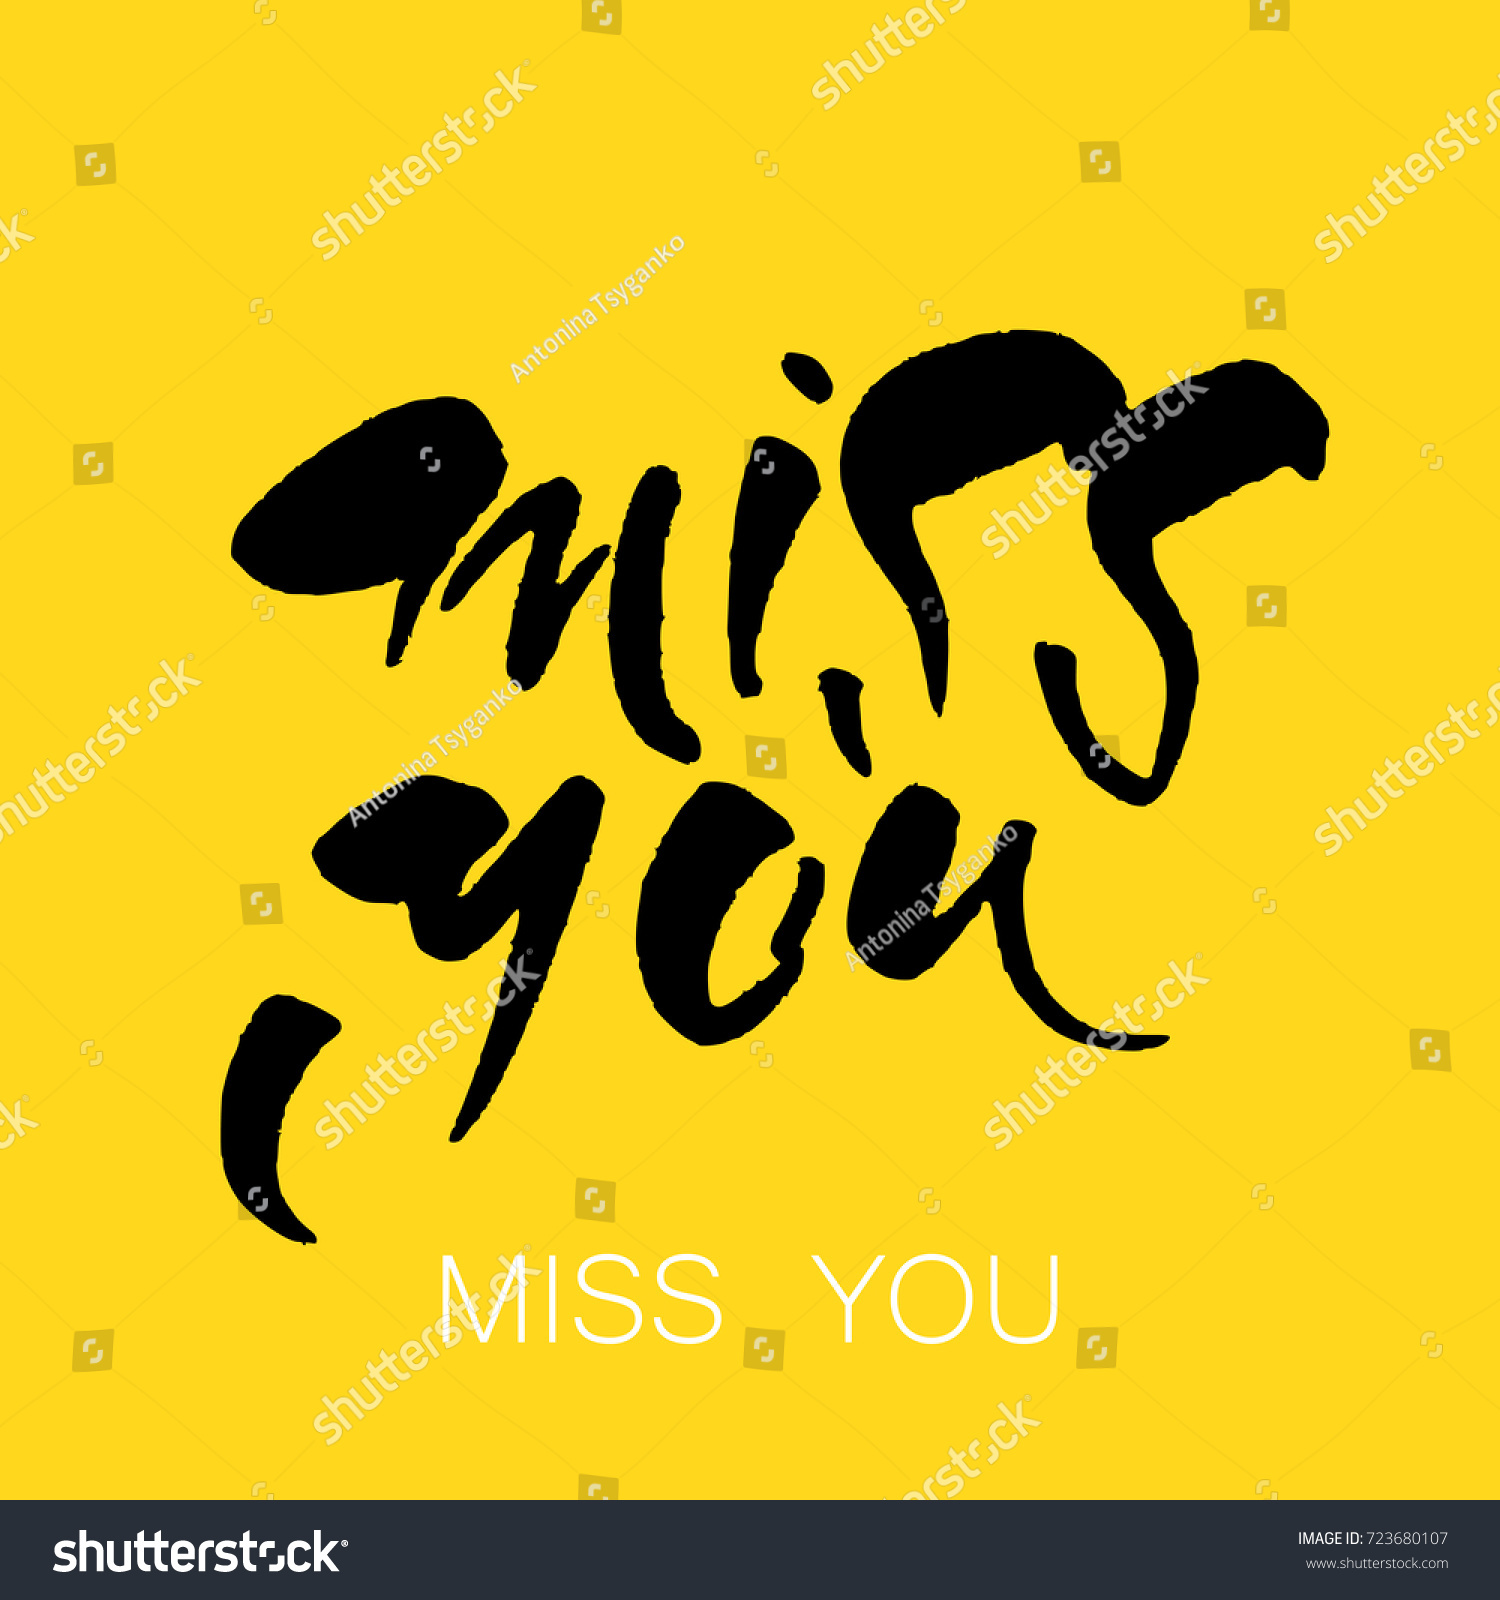 Miss You Greeting Card Hand Drawn Stock Vector 723680107 Shutterstock